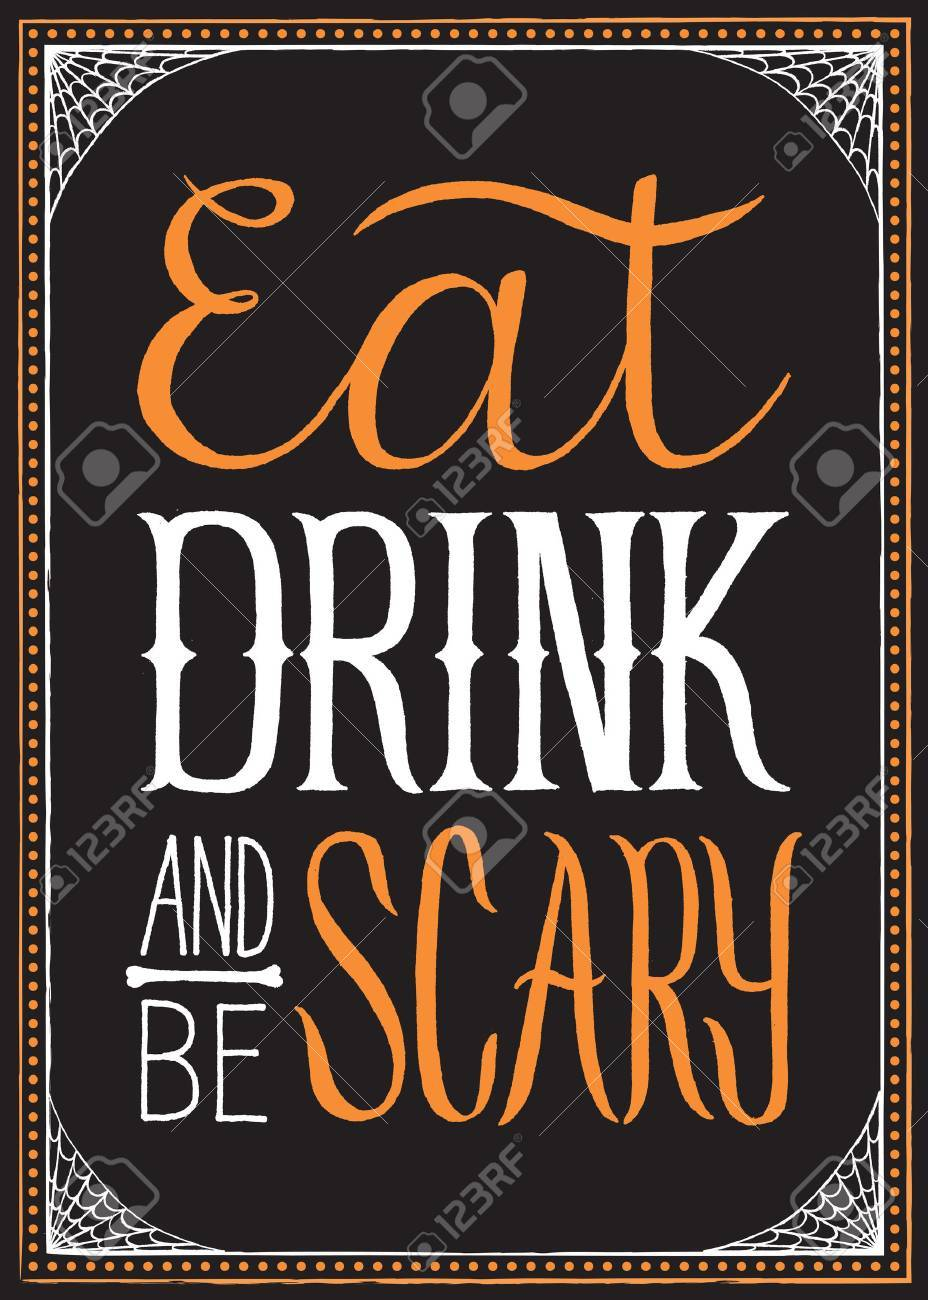 Eat, Drink and Be Scary - Halloween typography background with